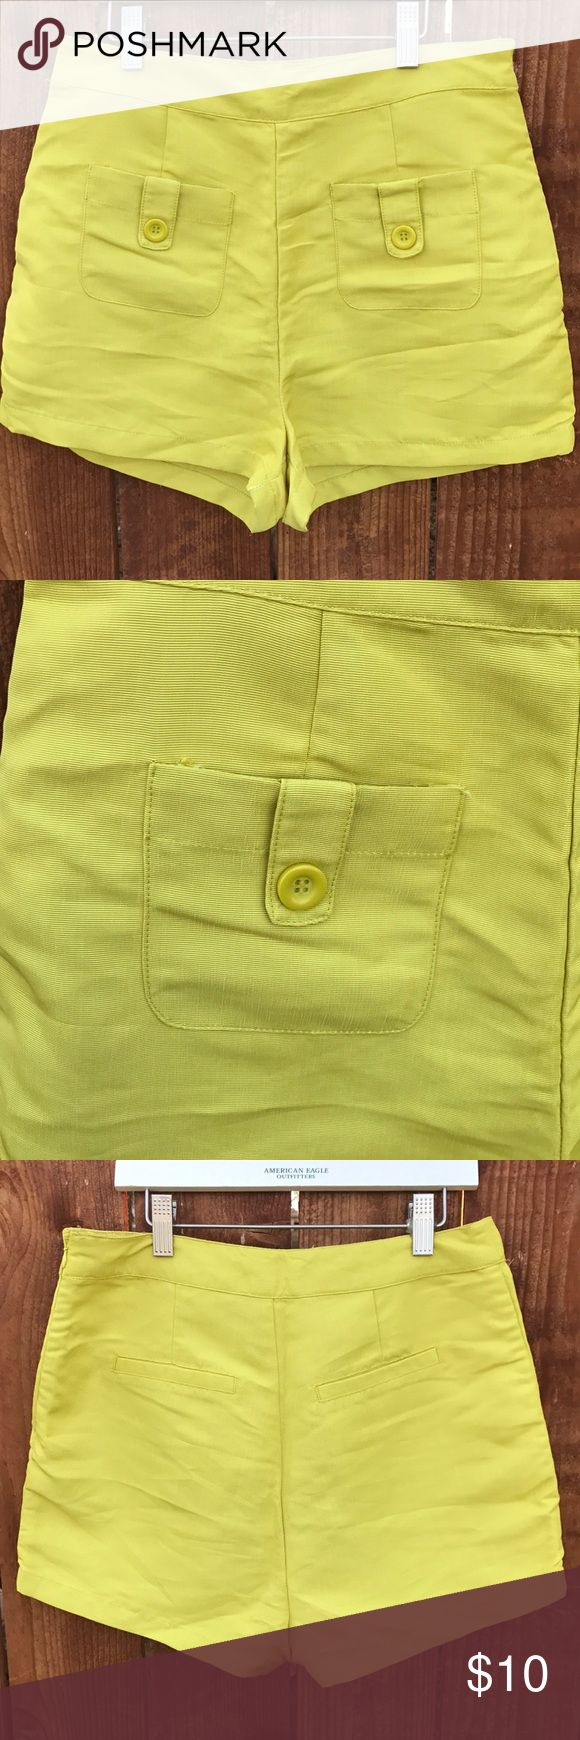 """Forever 21 Neon Yellow Shorts High waist shorts in neon yellow with side zipper for easy access, great condition. Fabric is NOT stretchable.  Rise: 14"""" Inseam: 2"""" Waist: 14.5"""" Forever 21 Shorts"""